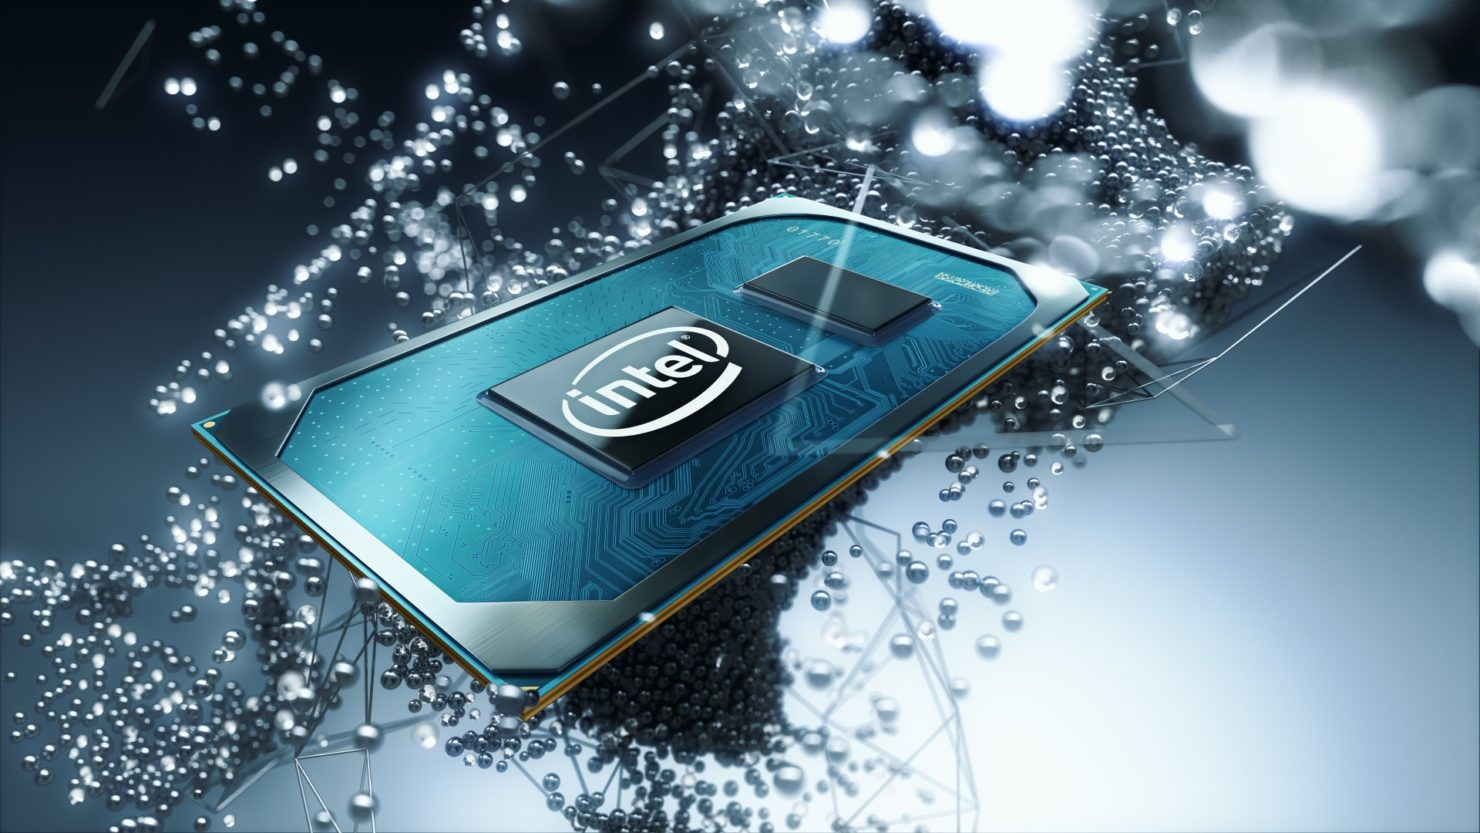 intel-unveils-core-i7-1195g7-&-core-i5-1155g7-cpus-–-10nm-tiger-lake-now-roars-up-to-5-ghz,-up-to-2x-faster-graphics-performance-than-amd-cezanne